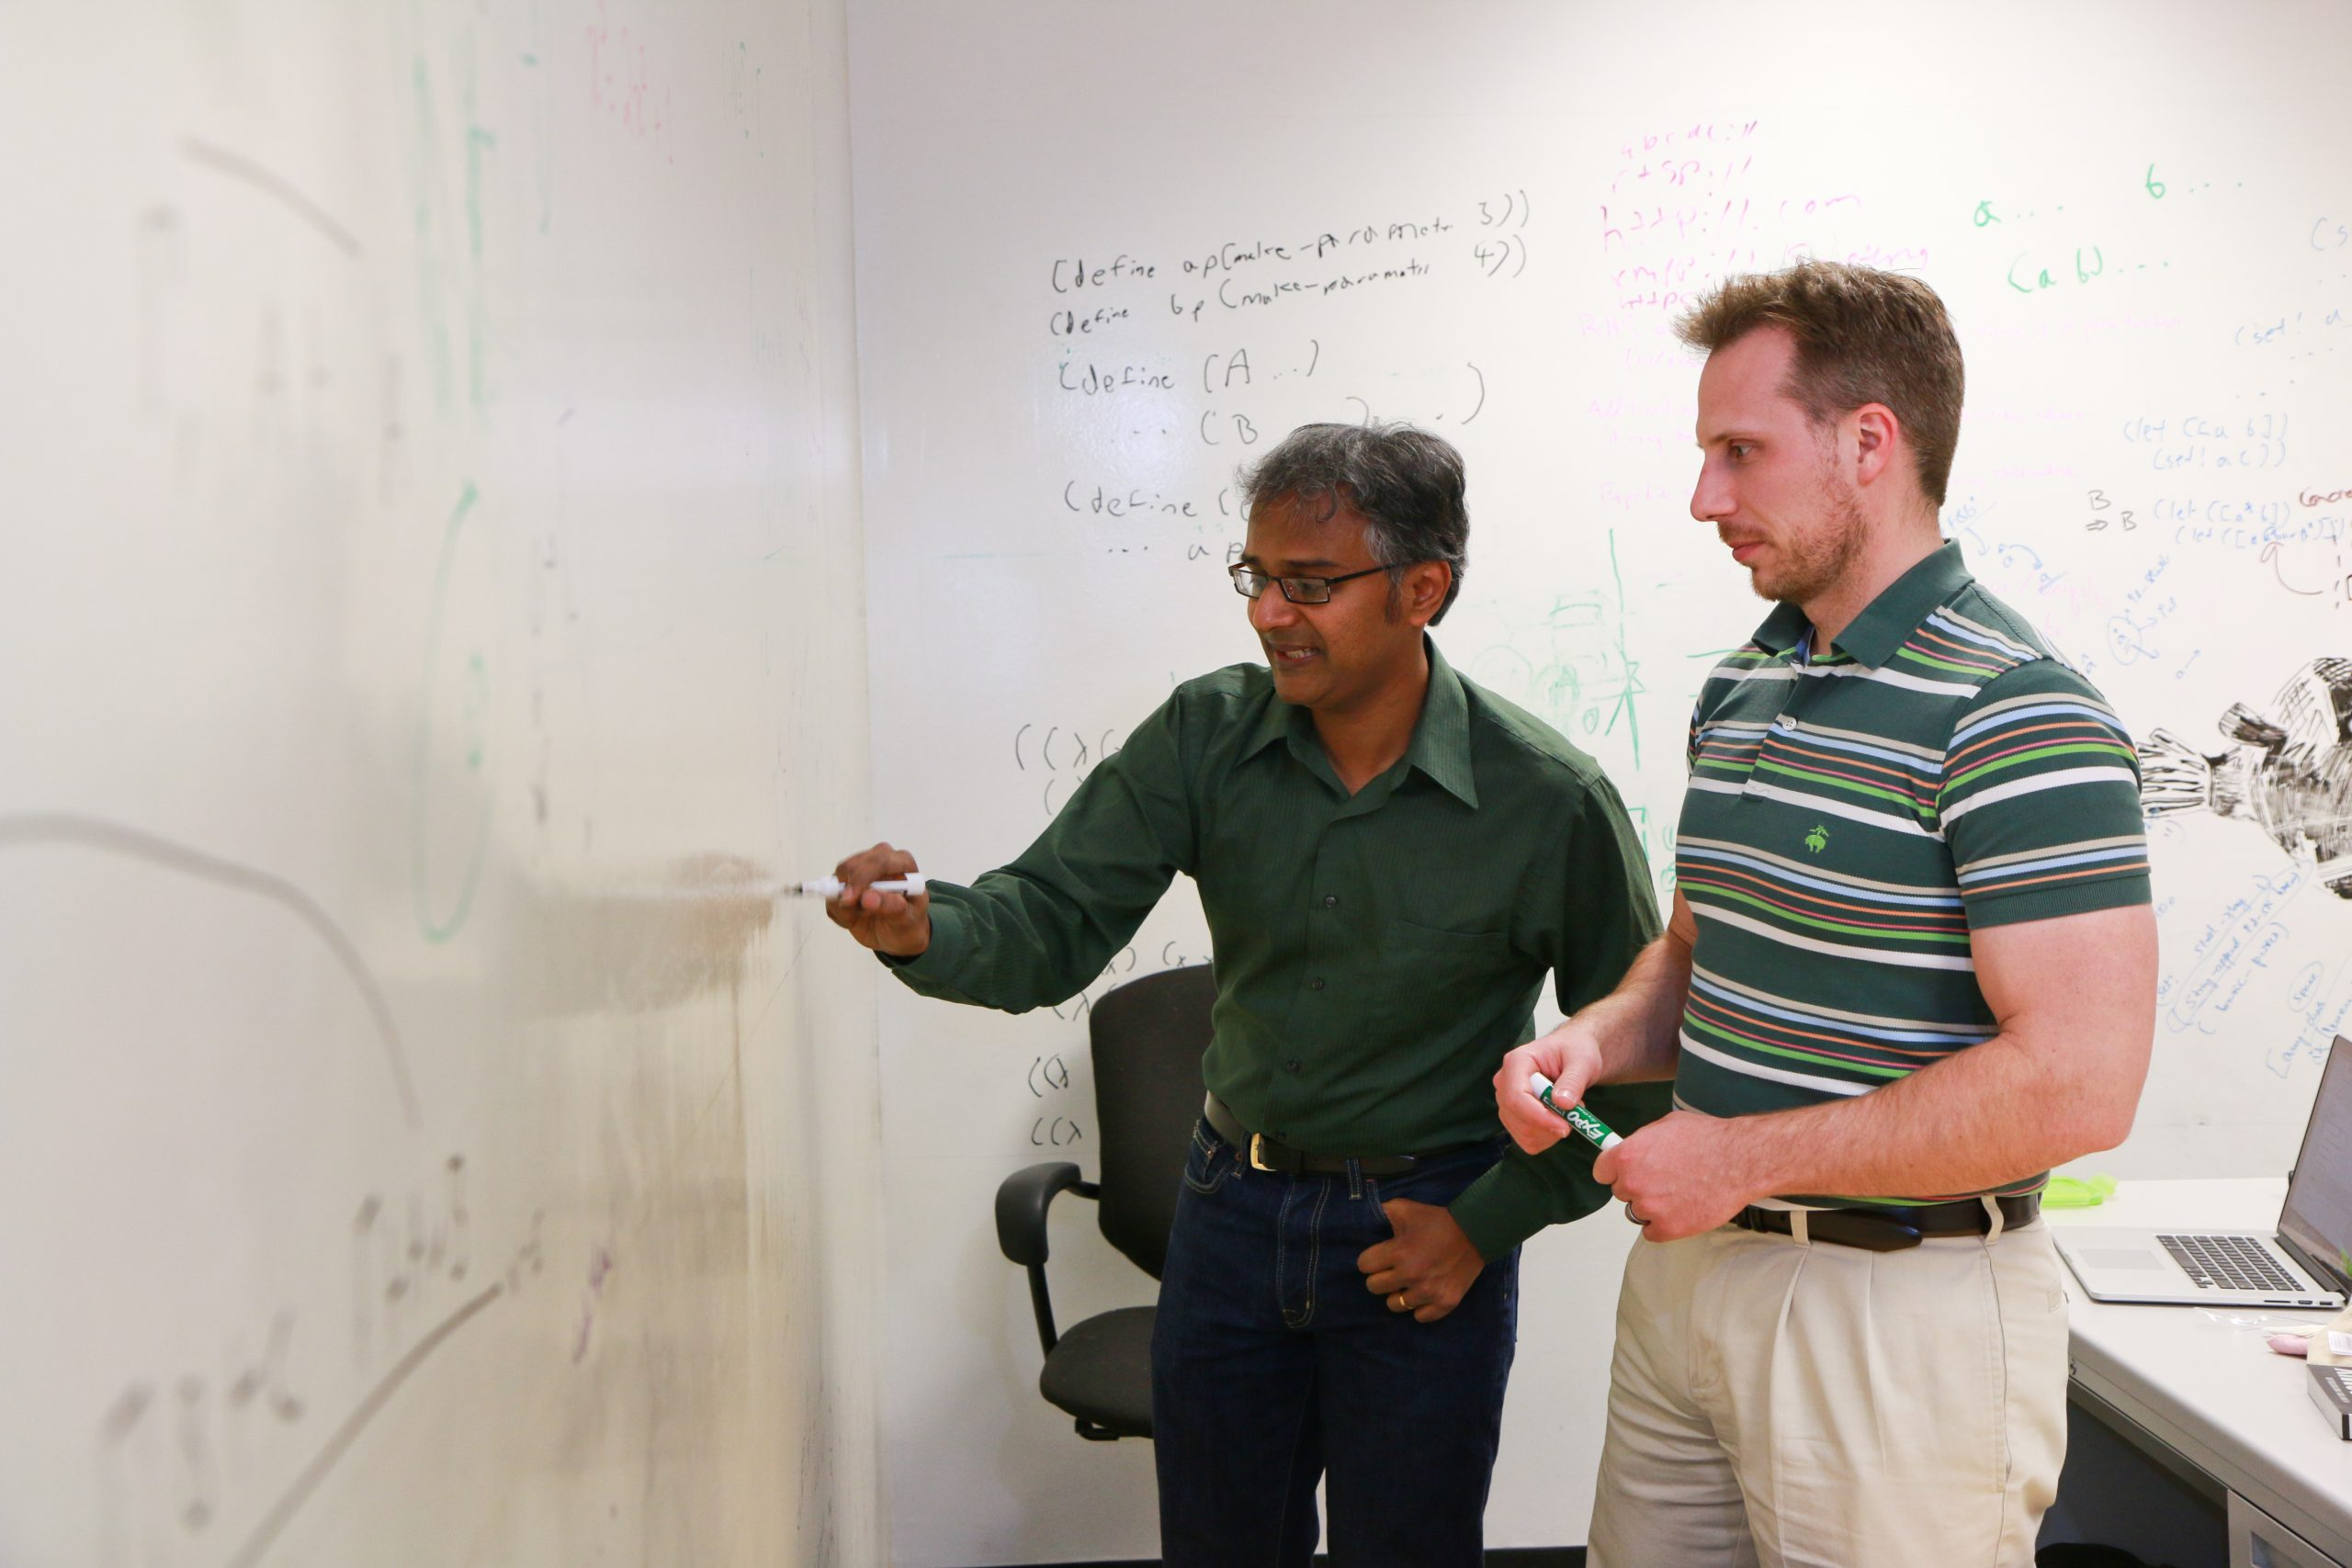 Suresh Venkatasubramanian, left, and Matt Might, both associate professors of computer science at the University of Utah, have received a $3 million government grant to produce software that can sniff out the next generation of computer vulnerabilities. These attacks, called algorithmic vulnerabilities, are harder to detect and can do a great amount of damage on computer systems.